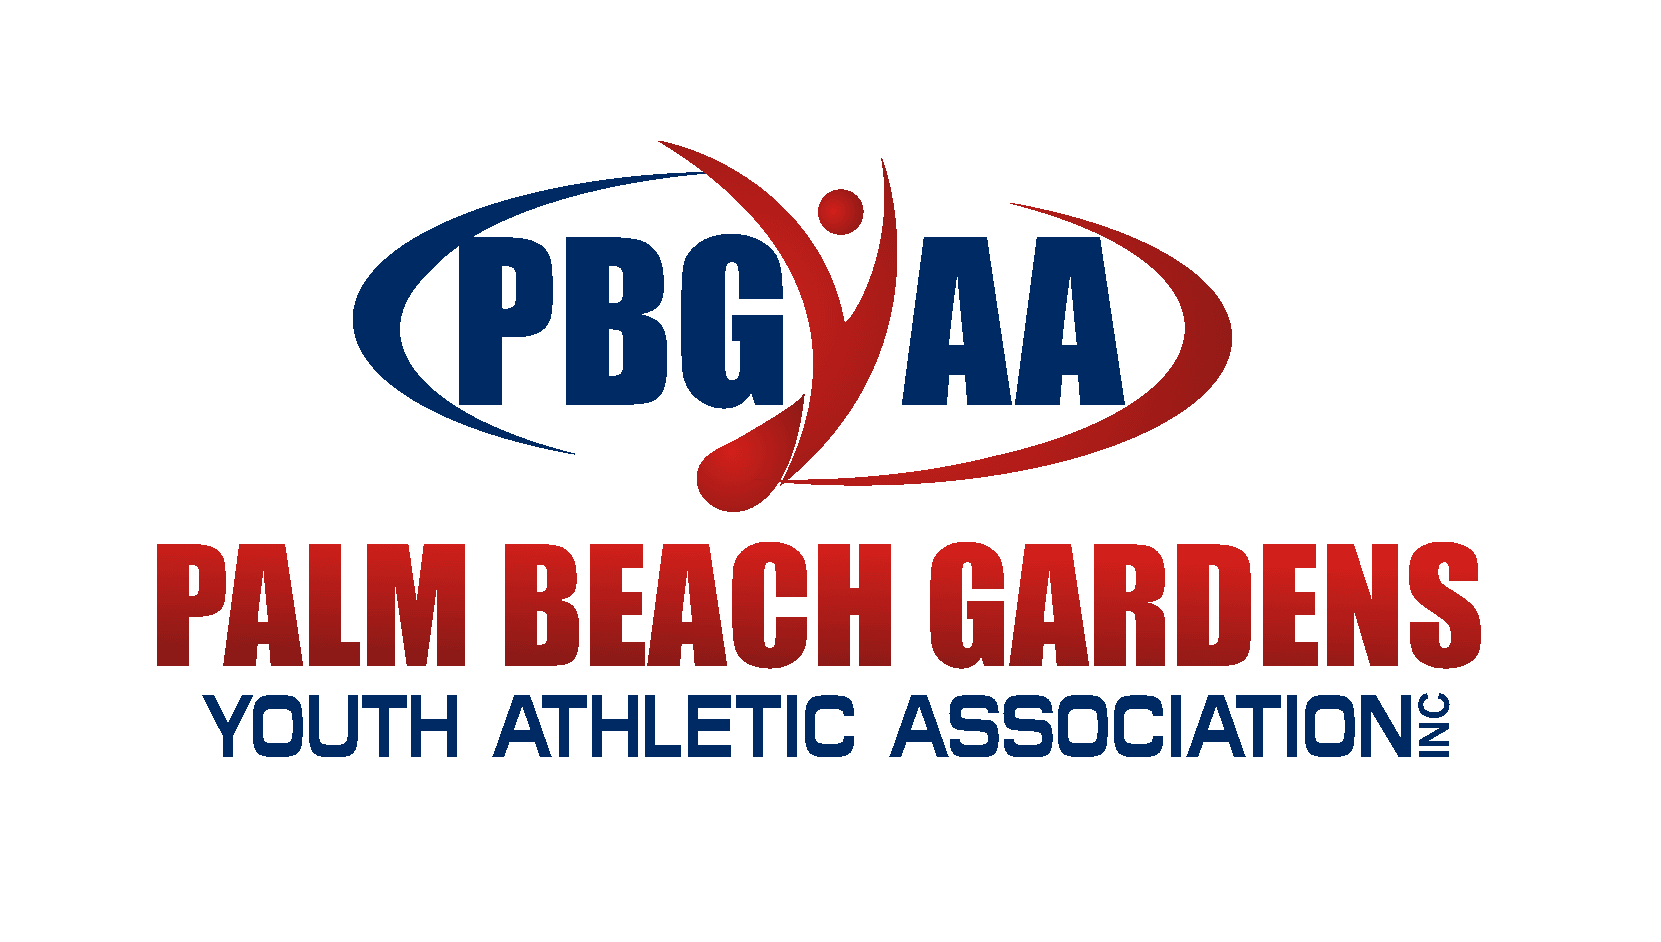 Palm Beach Gardens Youth Athletic Association.